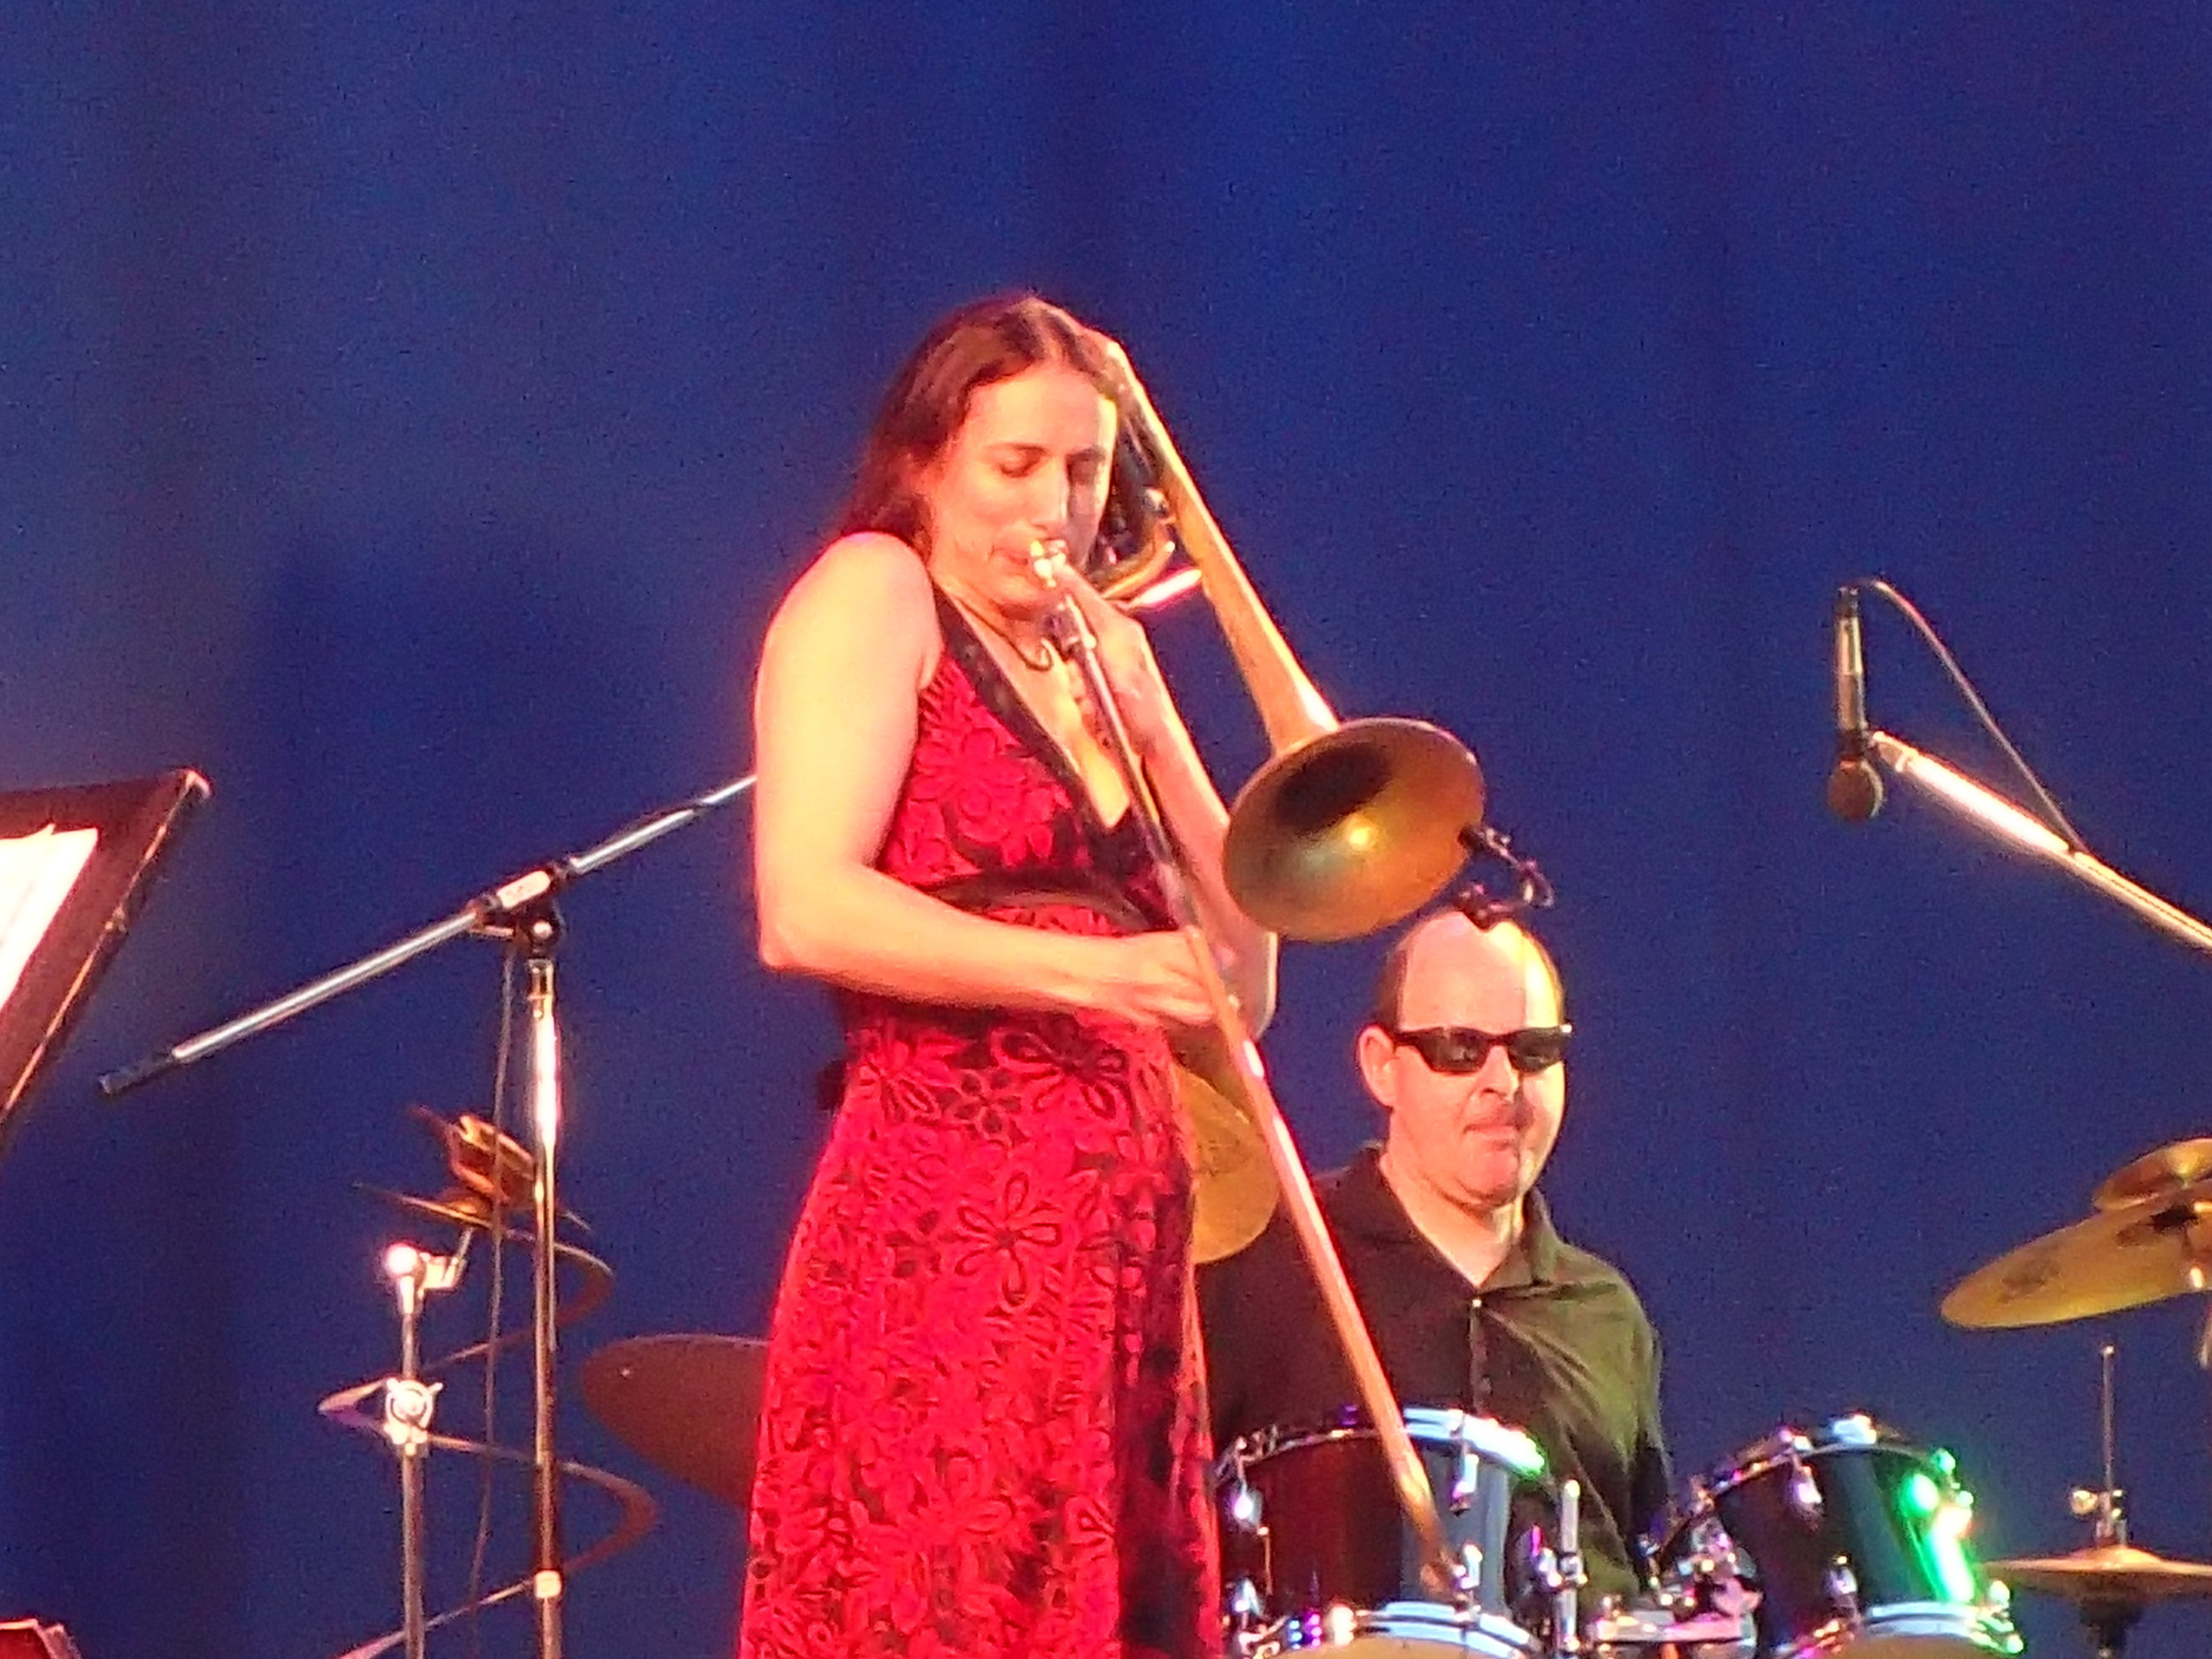 Reut Regev and Igal Foni performing with band in the Palmengarten on 27.07.2018. My apologies for the photo quality.